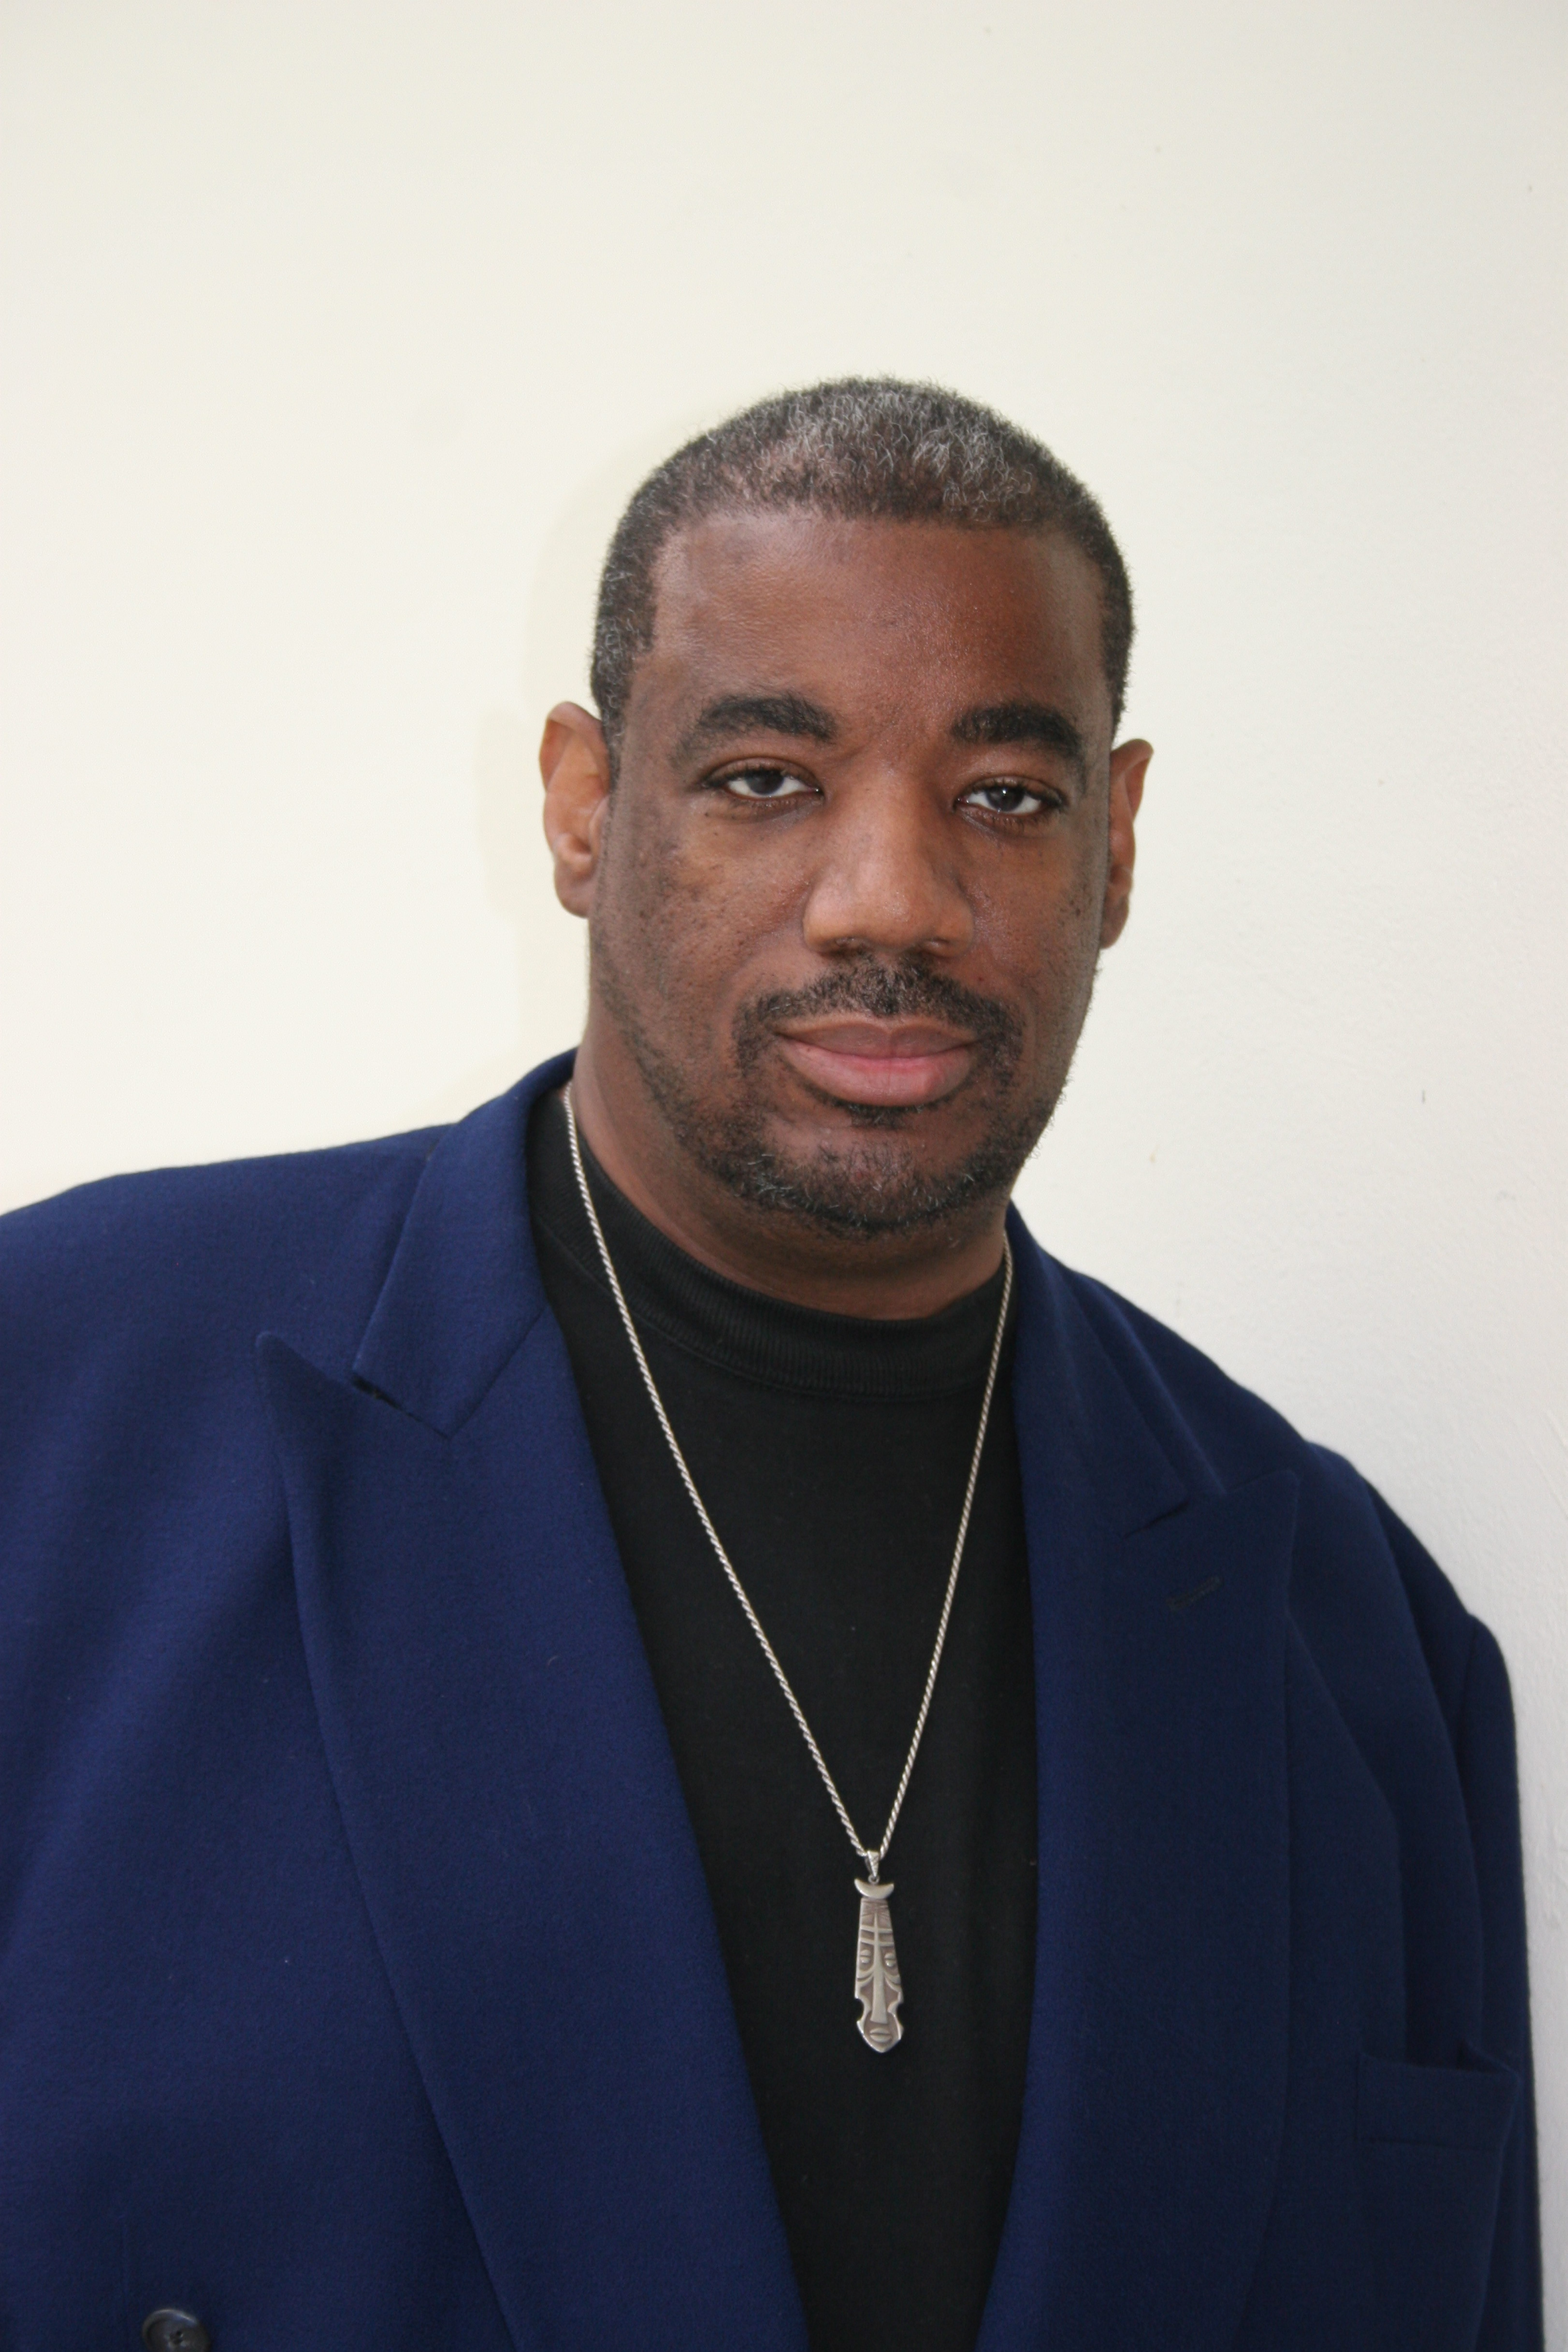 Kevin Mahogany will perform outdoors on the main stage of the Lewiston Jazz Festival Saturday.